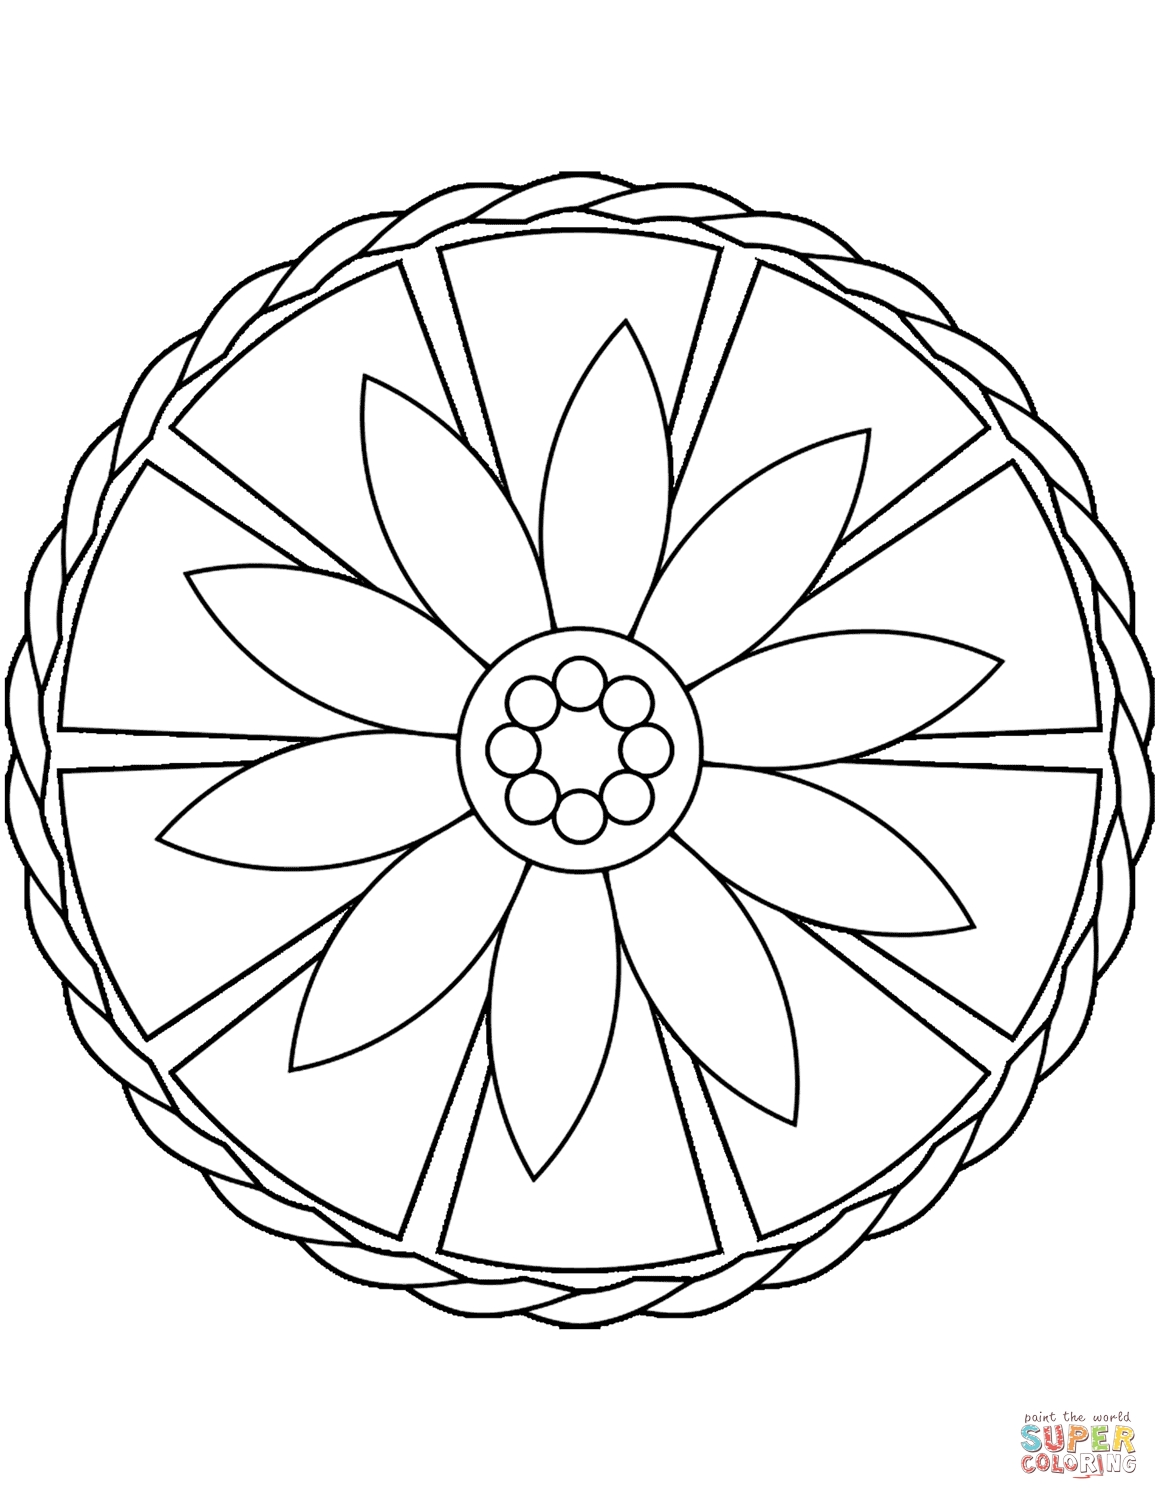 simple coloring pages - simple mandala with flower 0